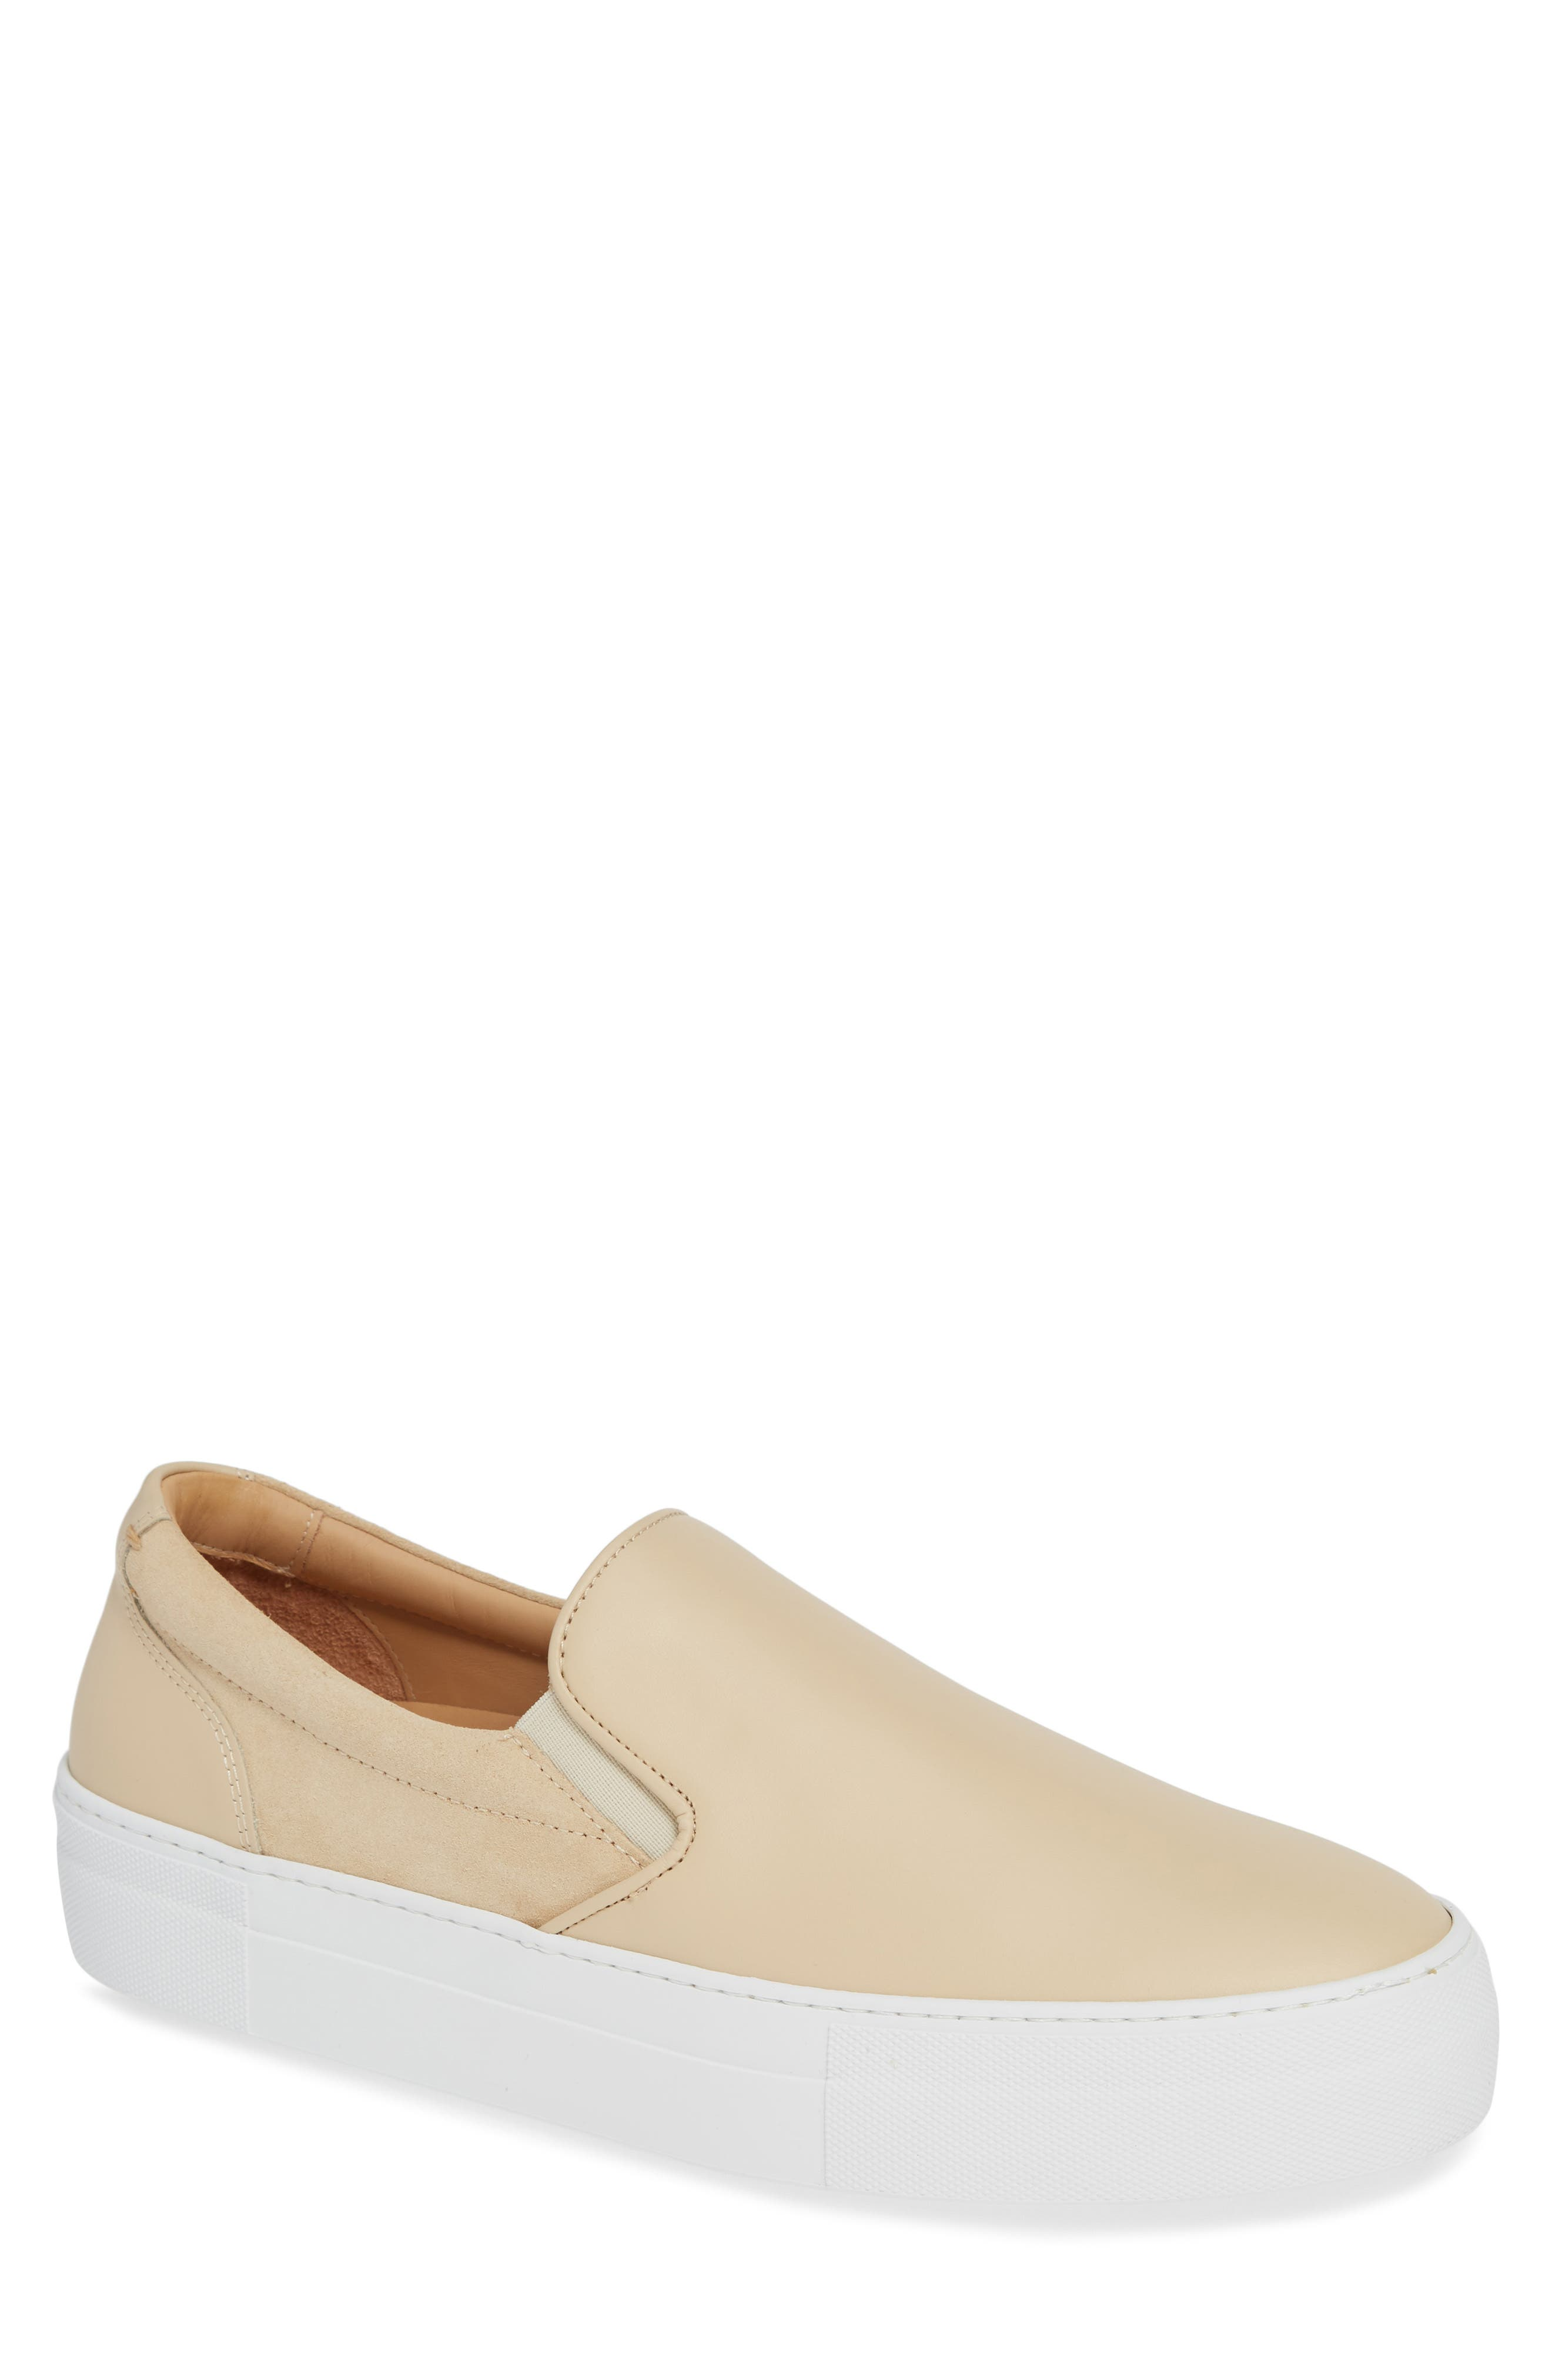 x Nick Wooster Stacker Slip-On,                         Main,                         color, NEUTRAL BEIGE